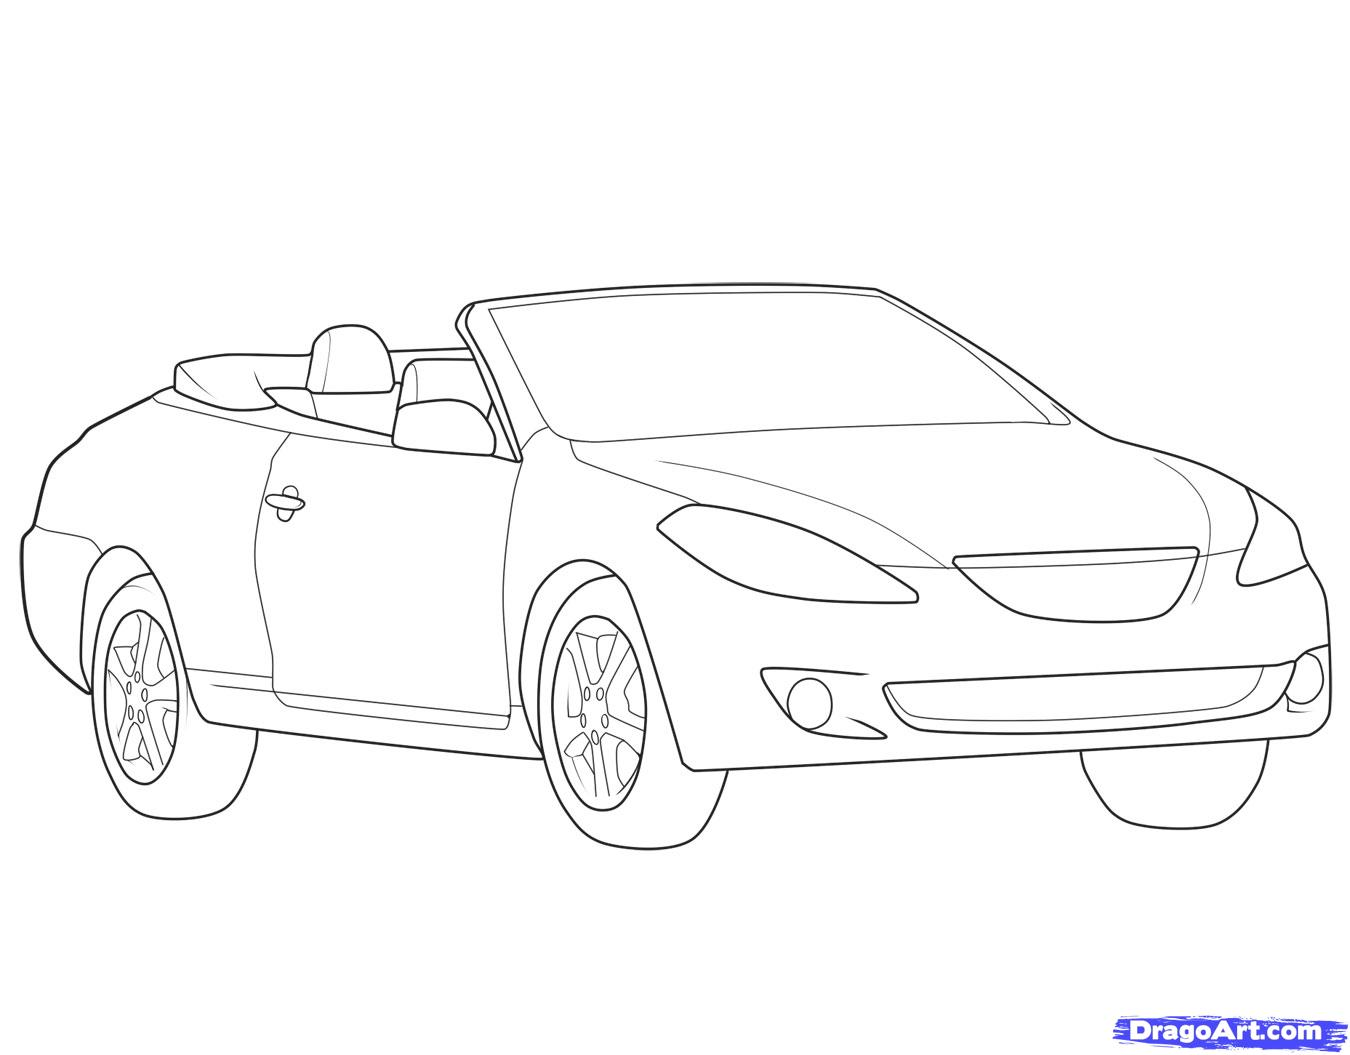 1350x1055 How To Draw The Car A Cabriolet Step By Step